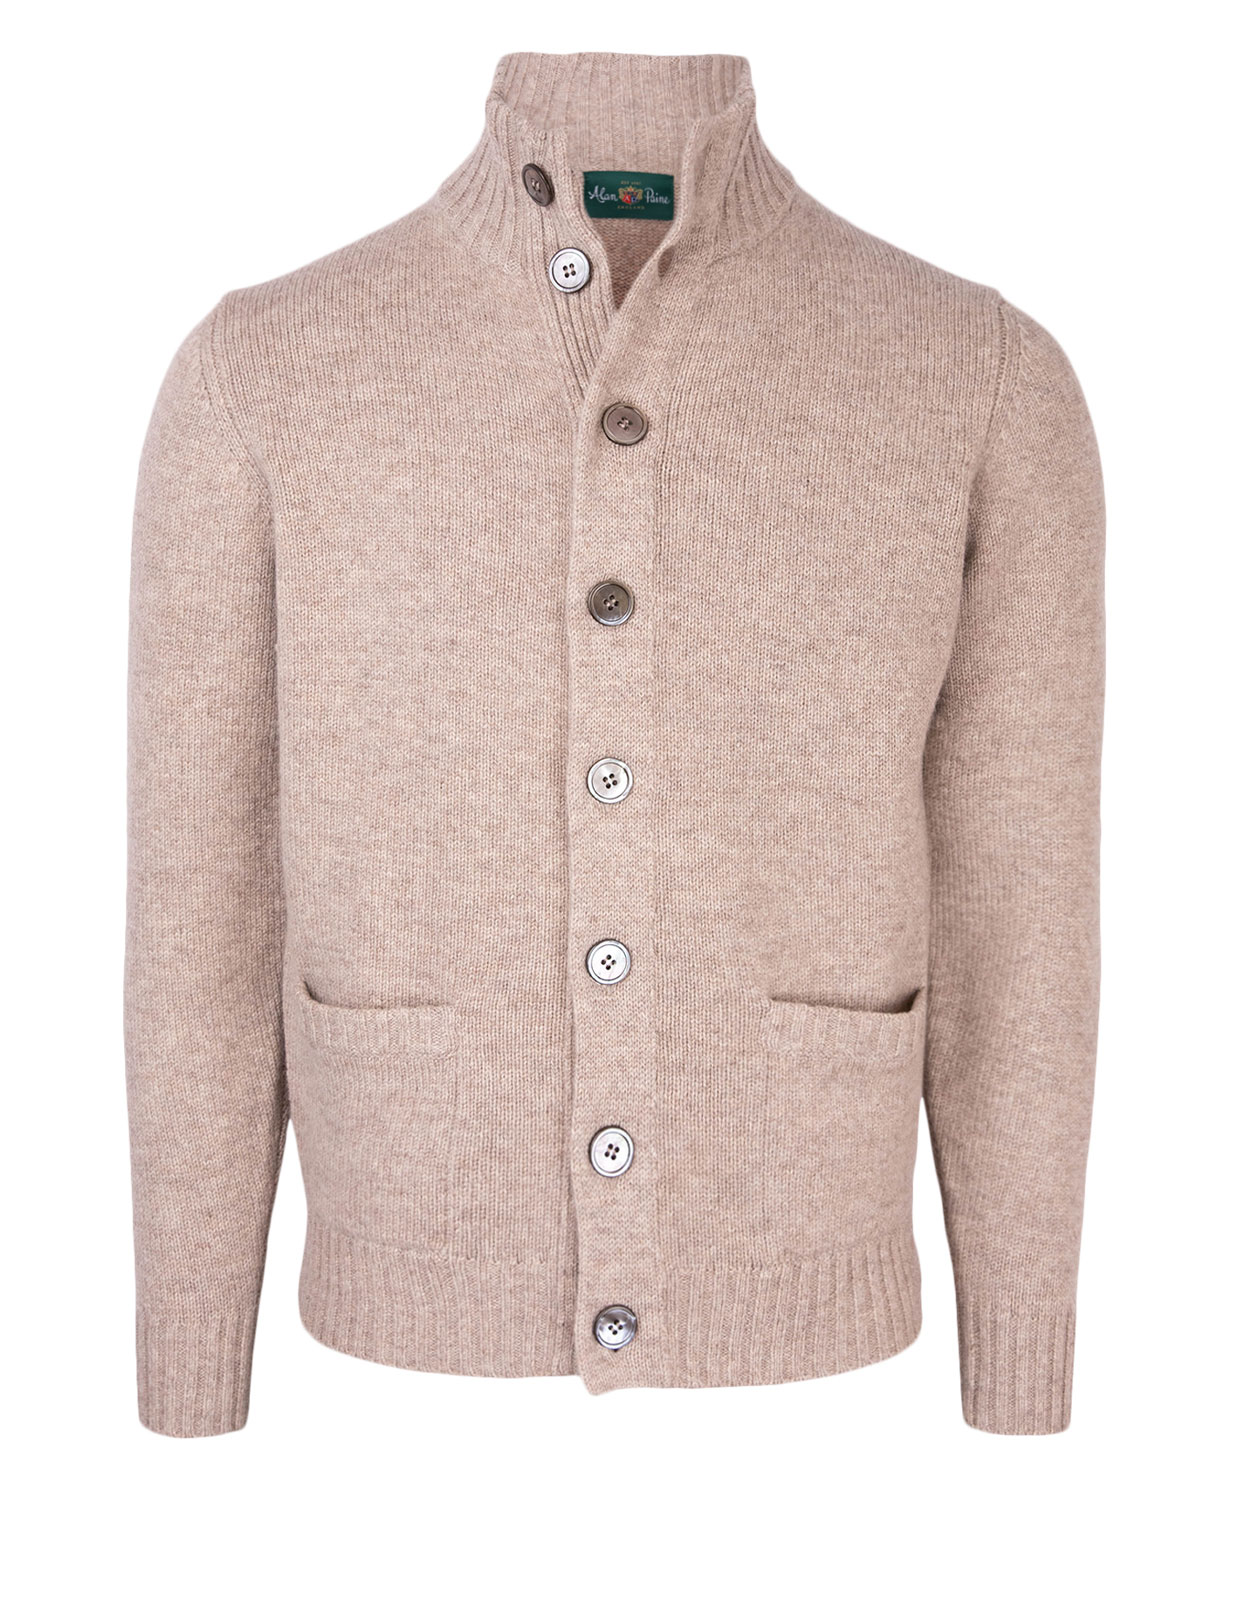 Landford Full Button Cardigan Cobble